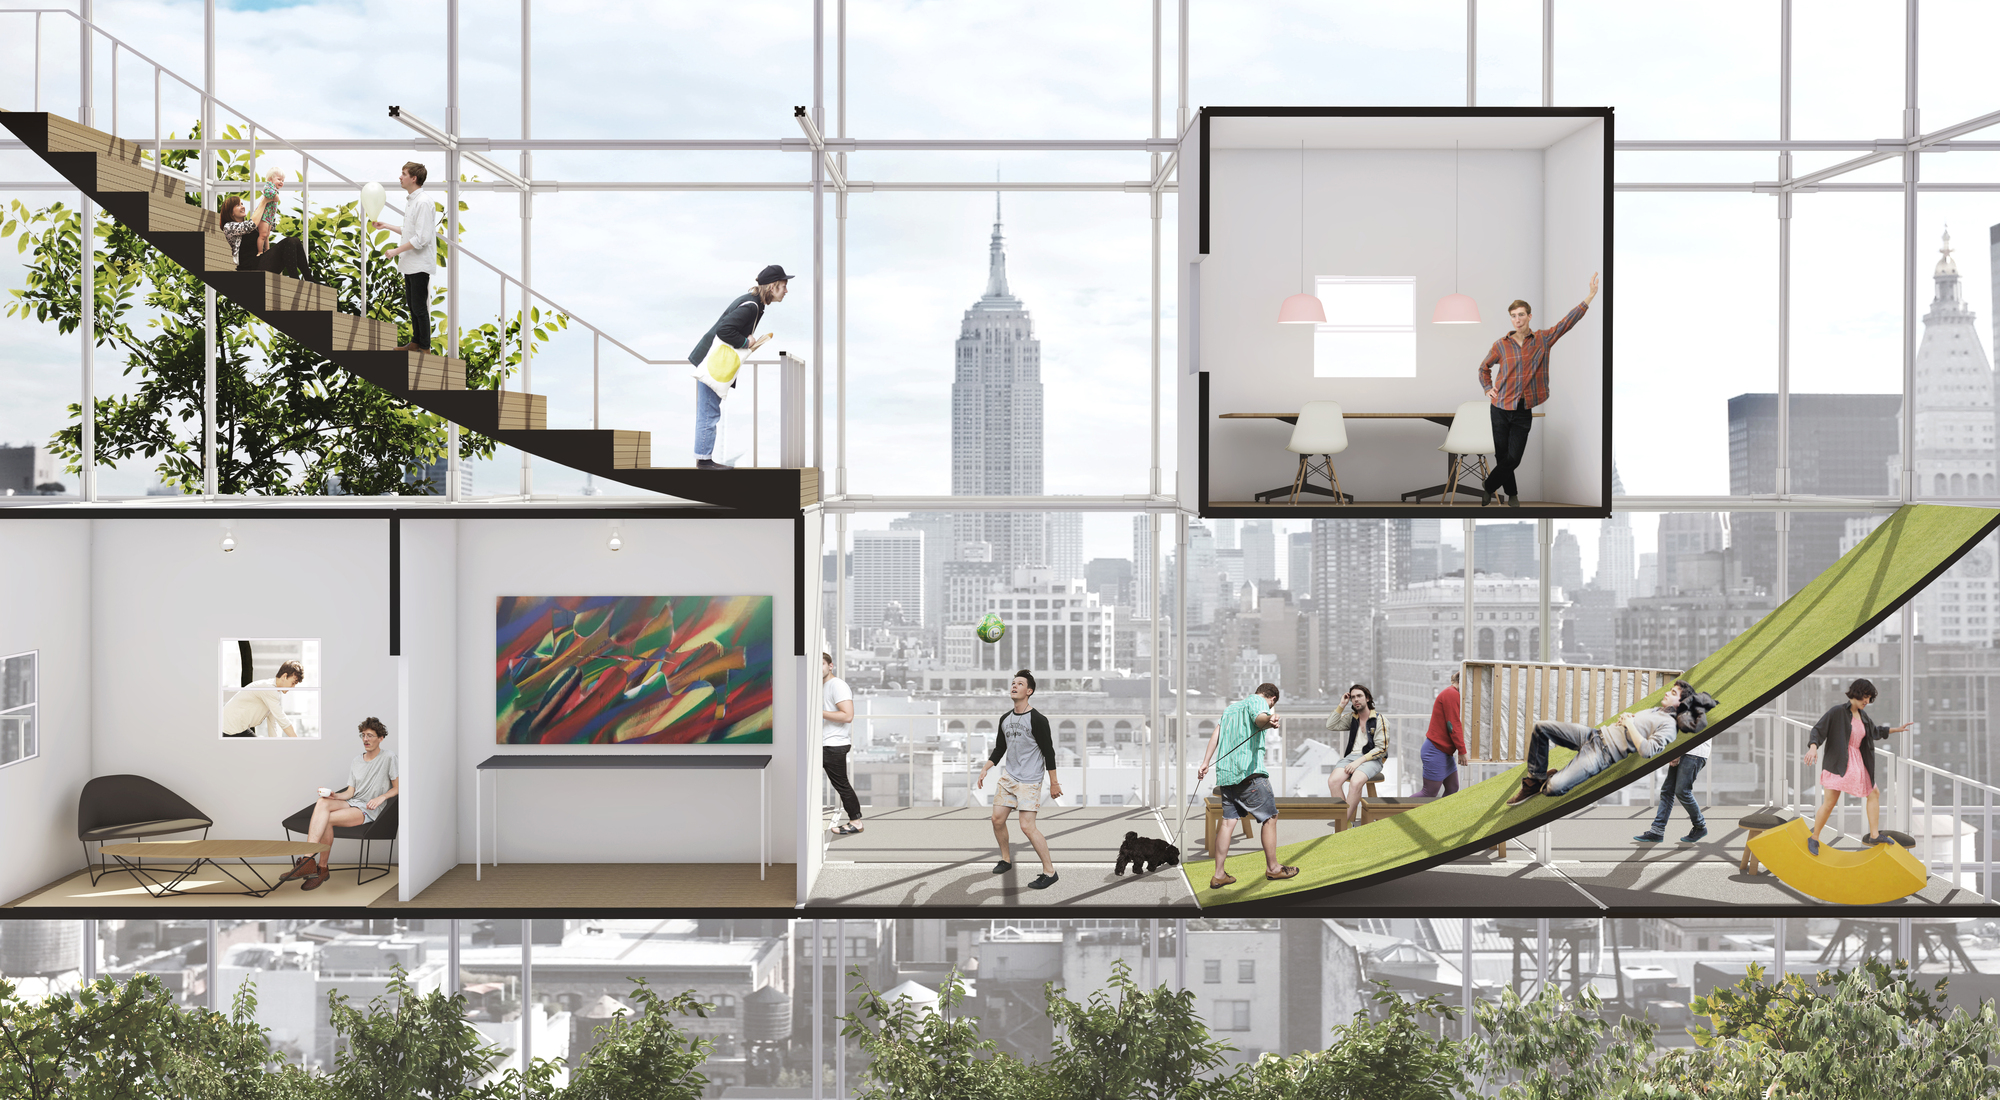 Speculative project seeks to take advantage of nyc air rights for affordable housing archdaily - Housessquare meters three affordable projects ...